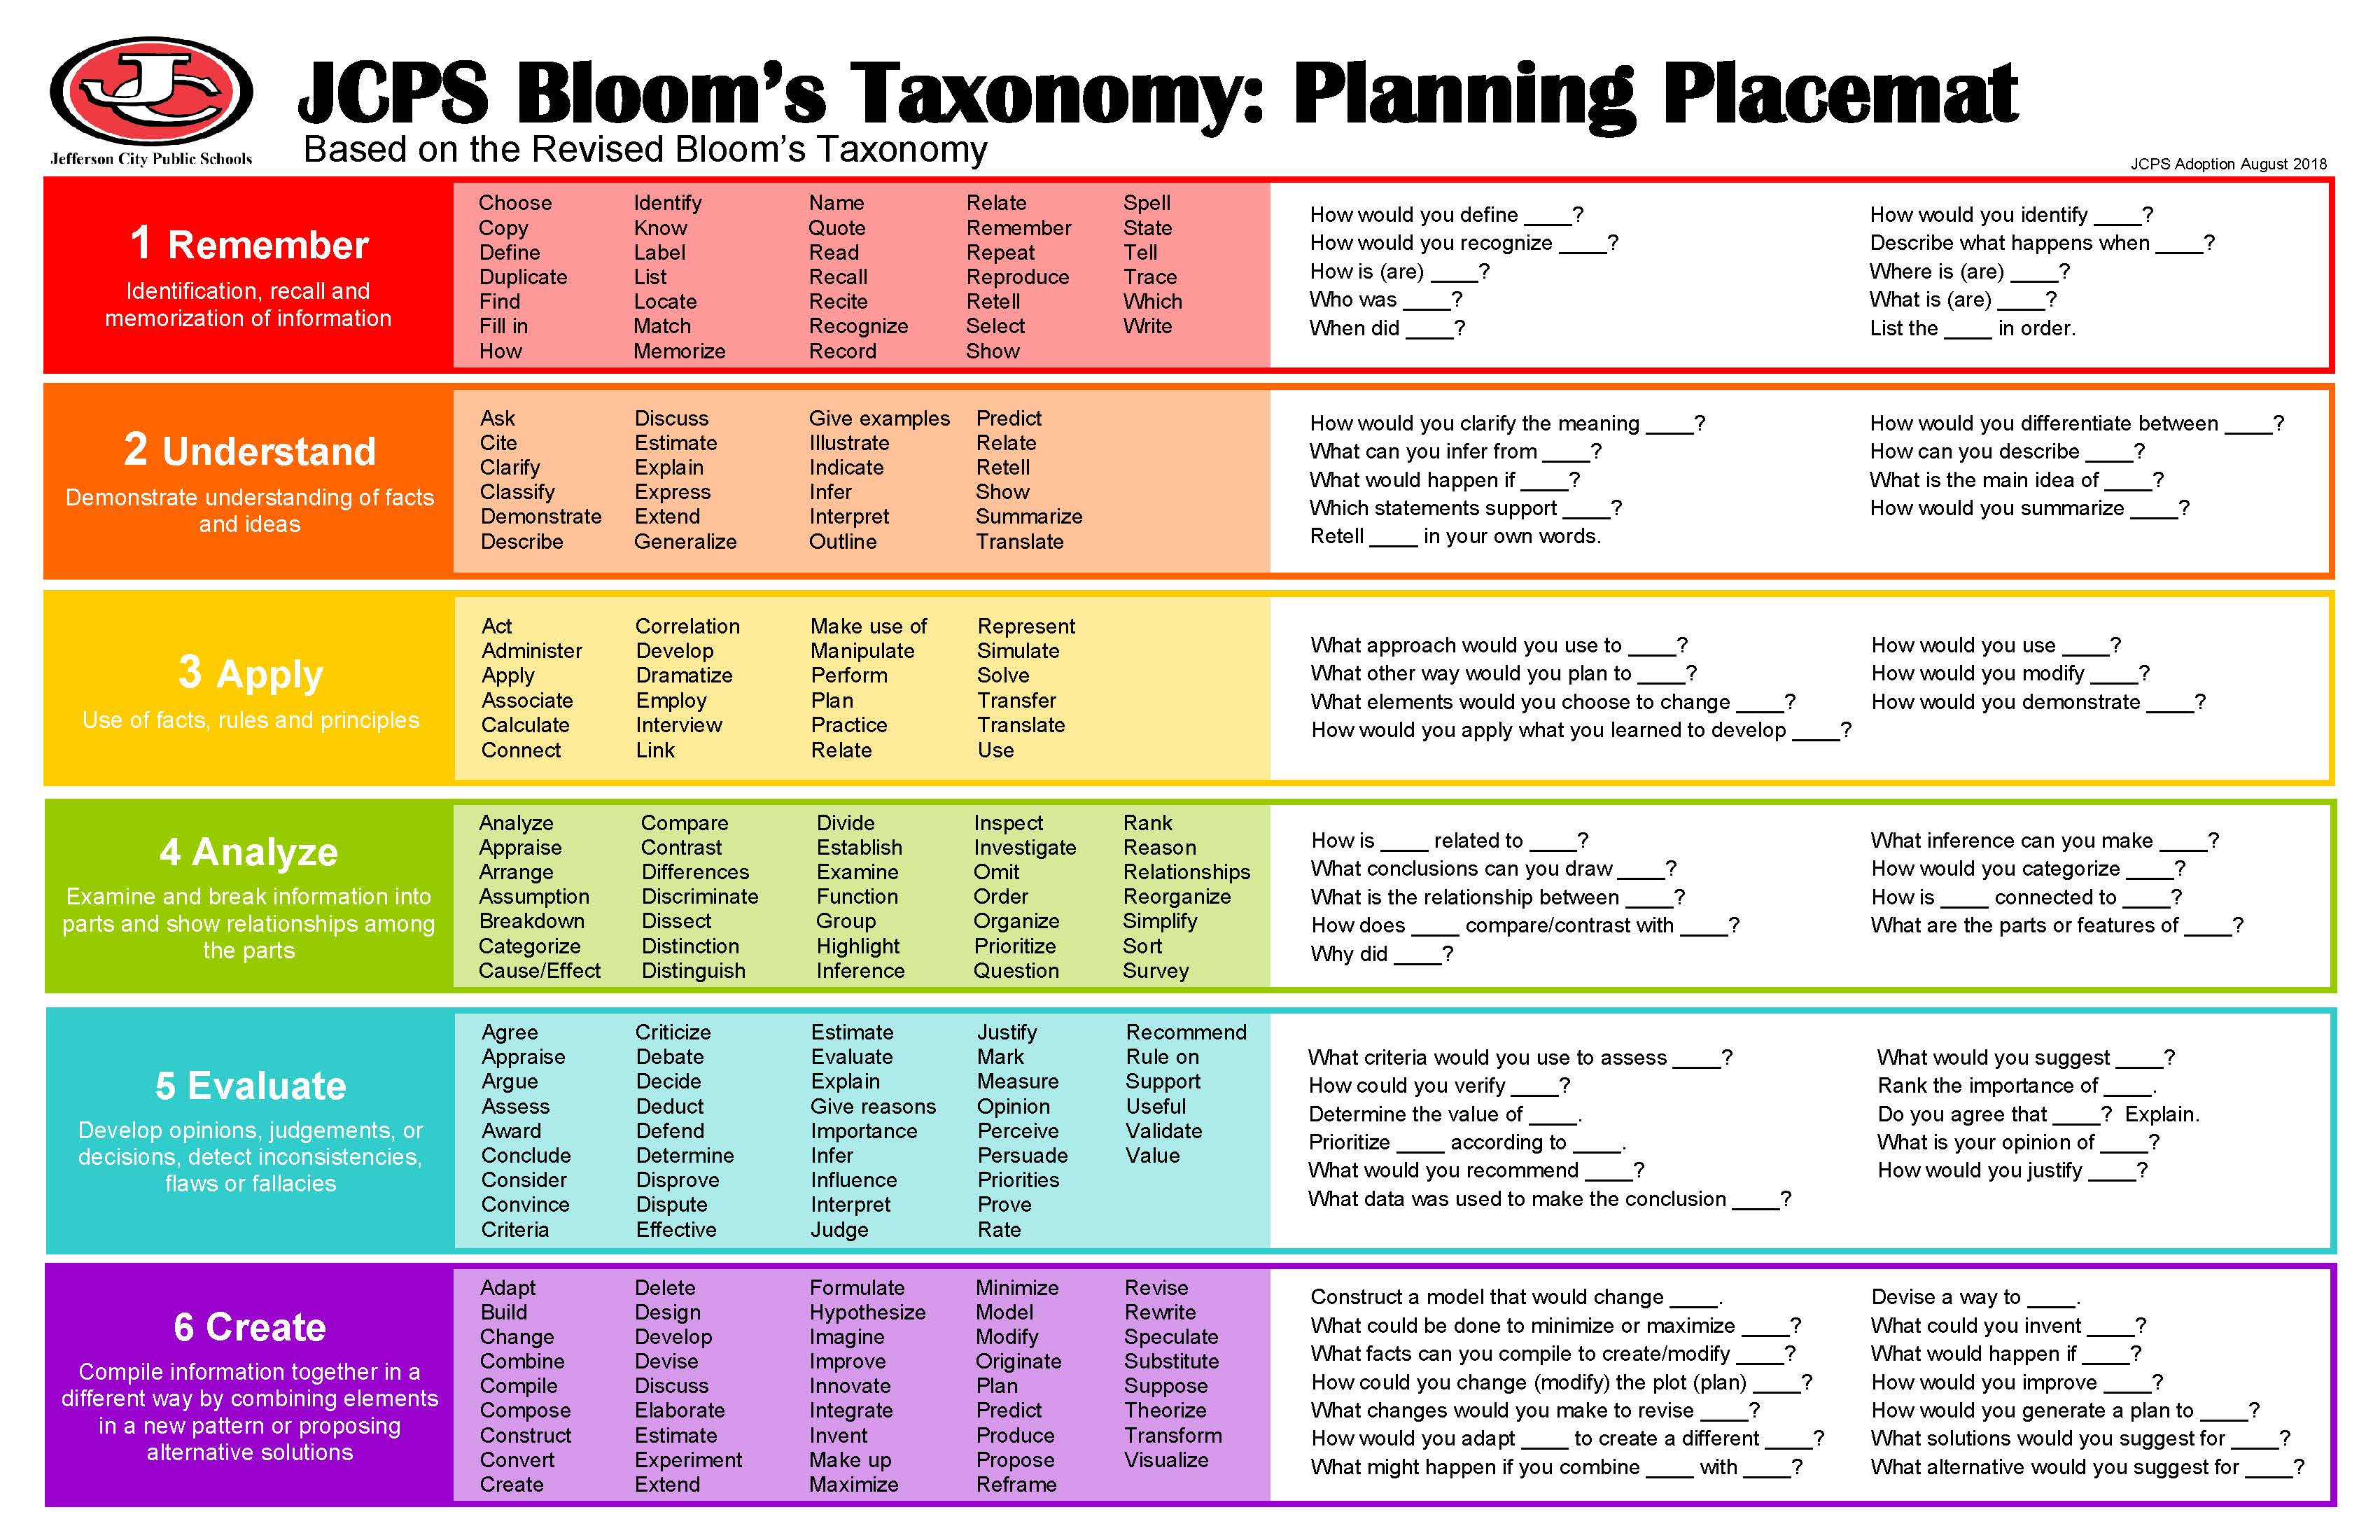 JCPS Bloom's Taxonomy